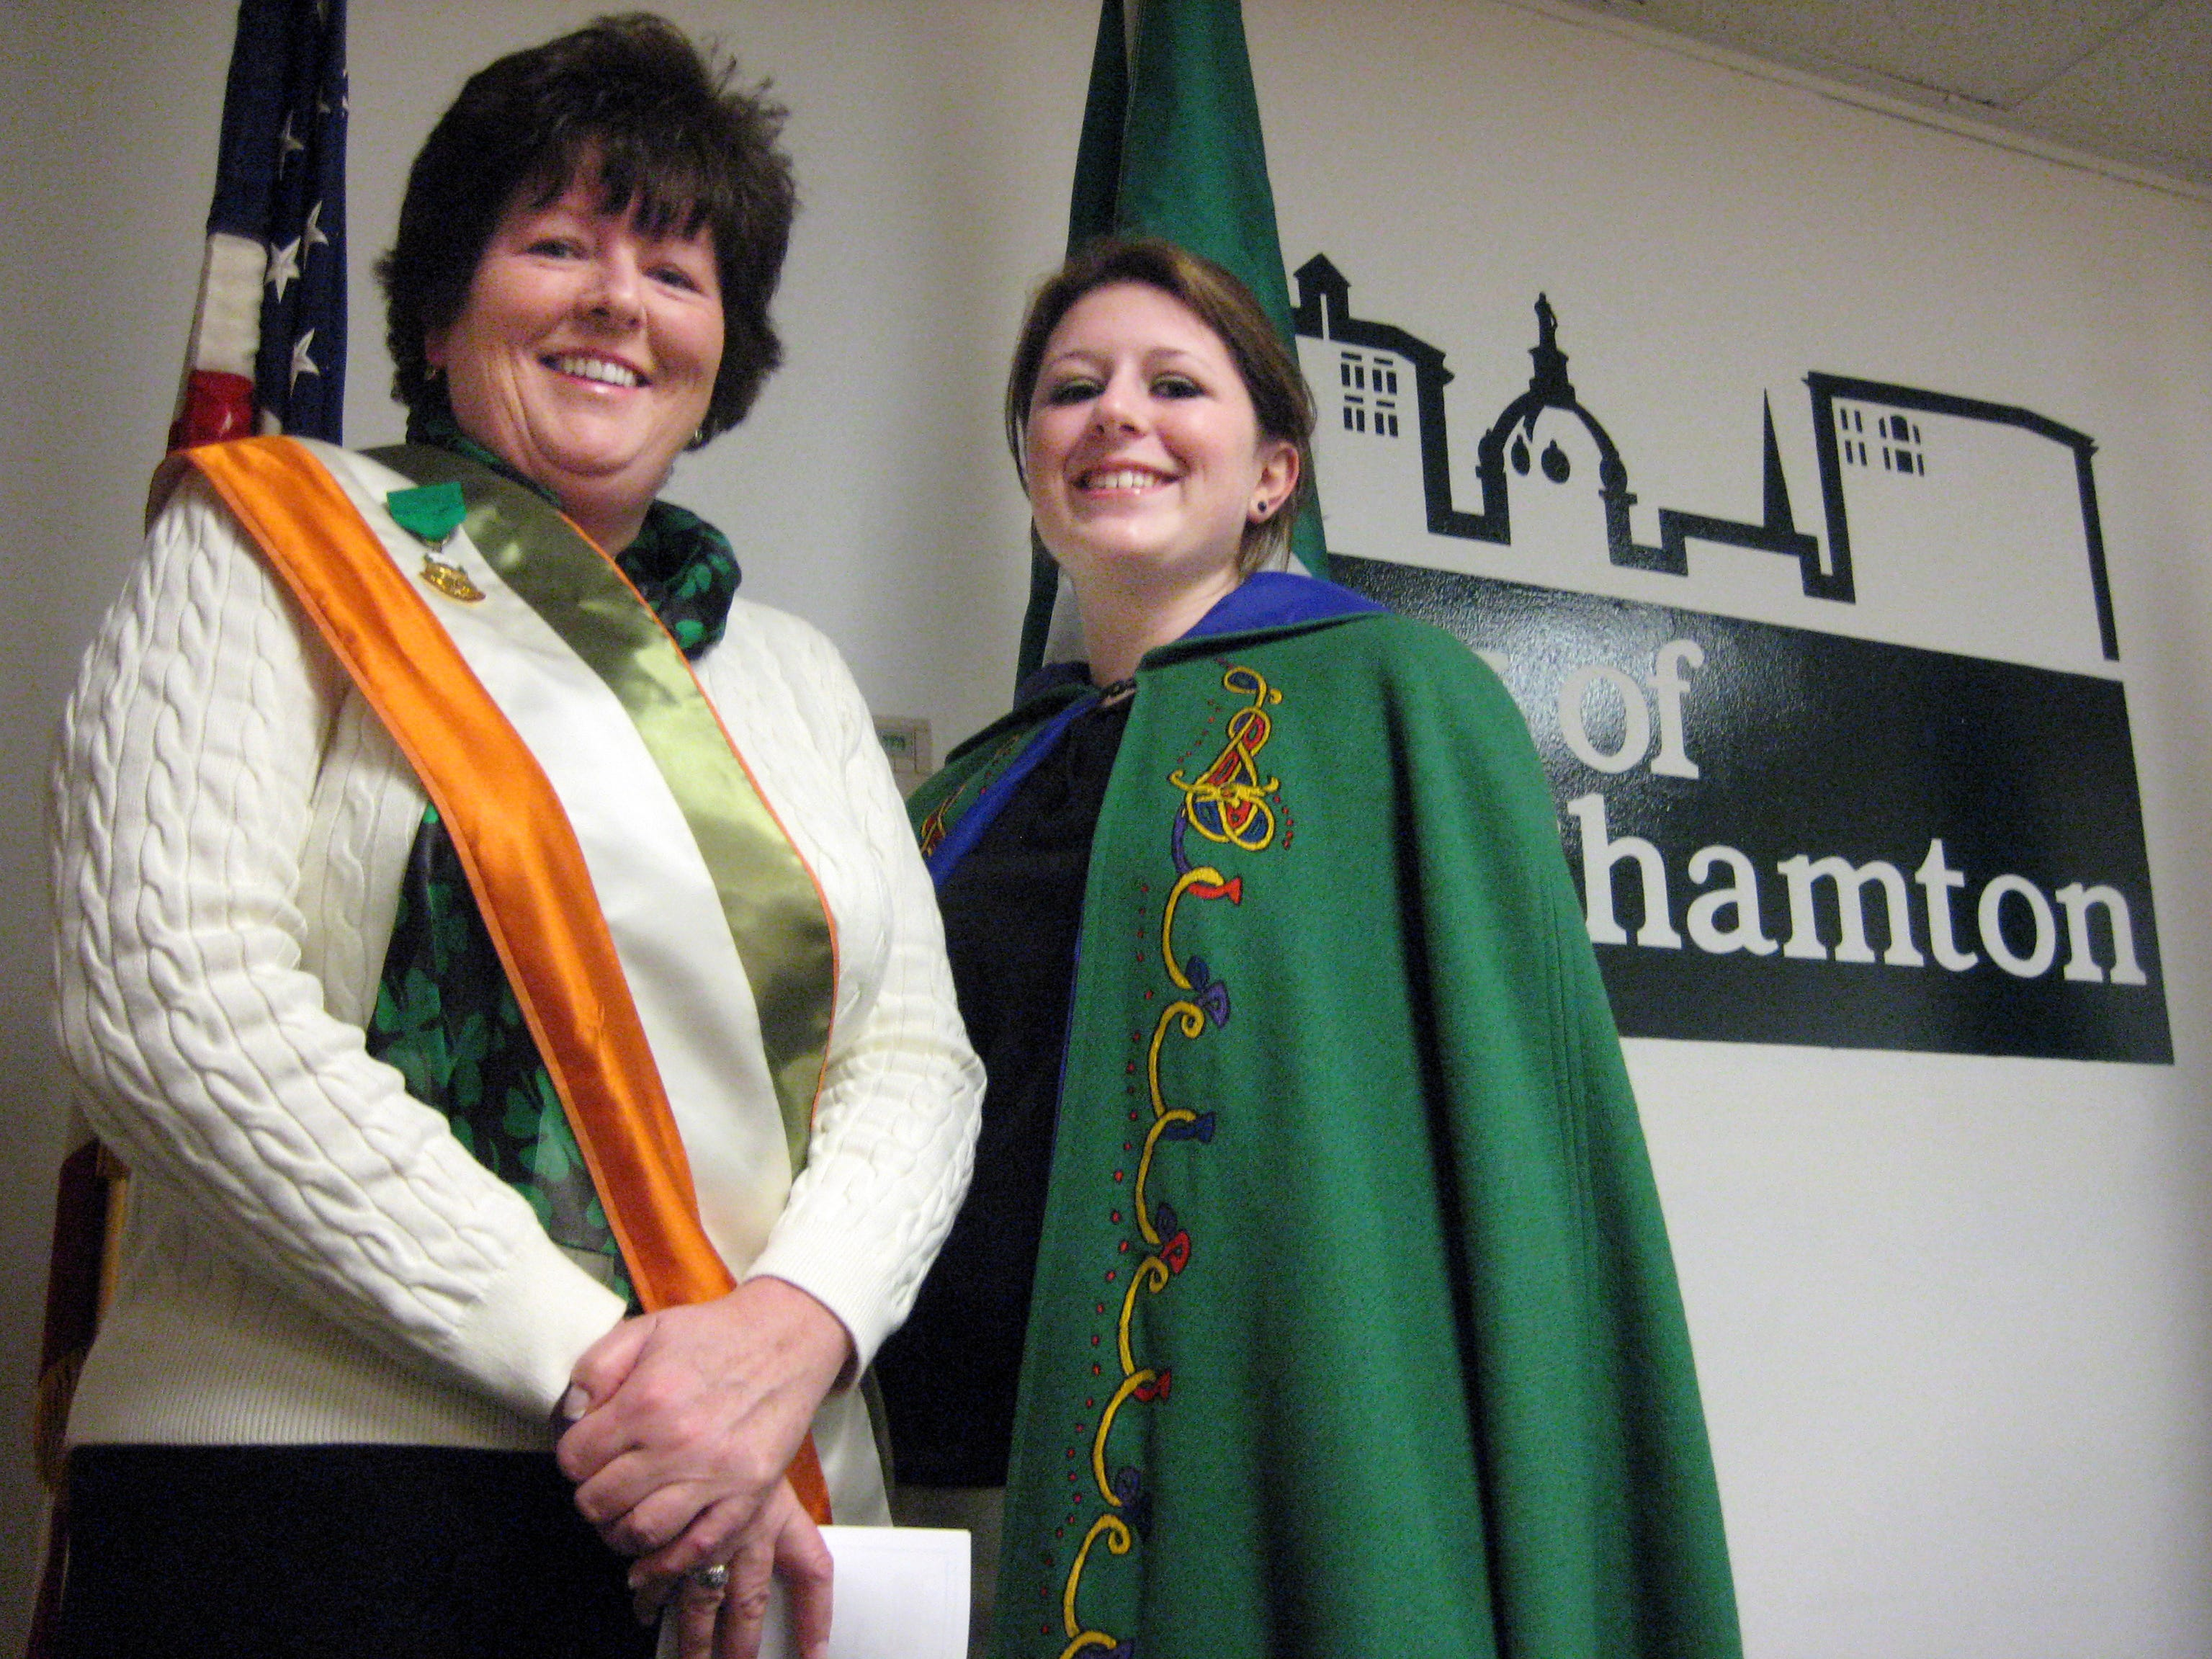 2008: Gabrielle Blodgett, right, will be the Maid of Erin and play the bagpipes alongside her mother, Kathy Blodgett, at Binghamton's St. Patrick's Day Parade.